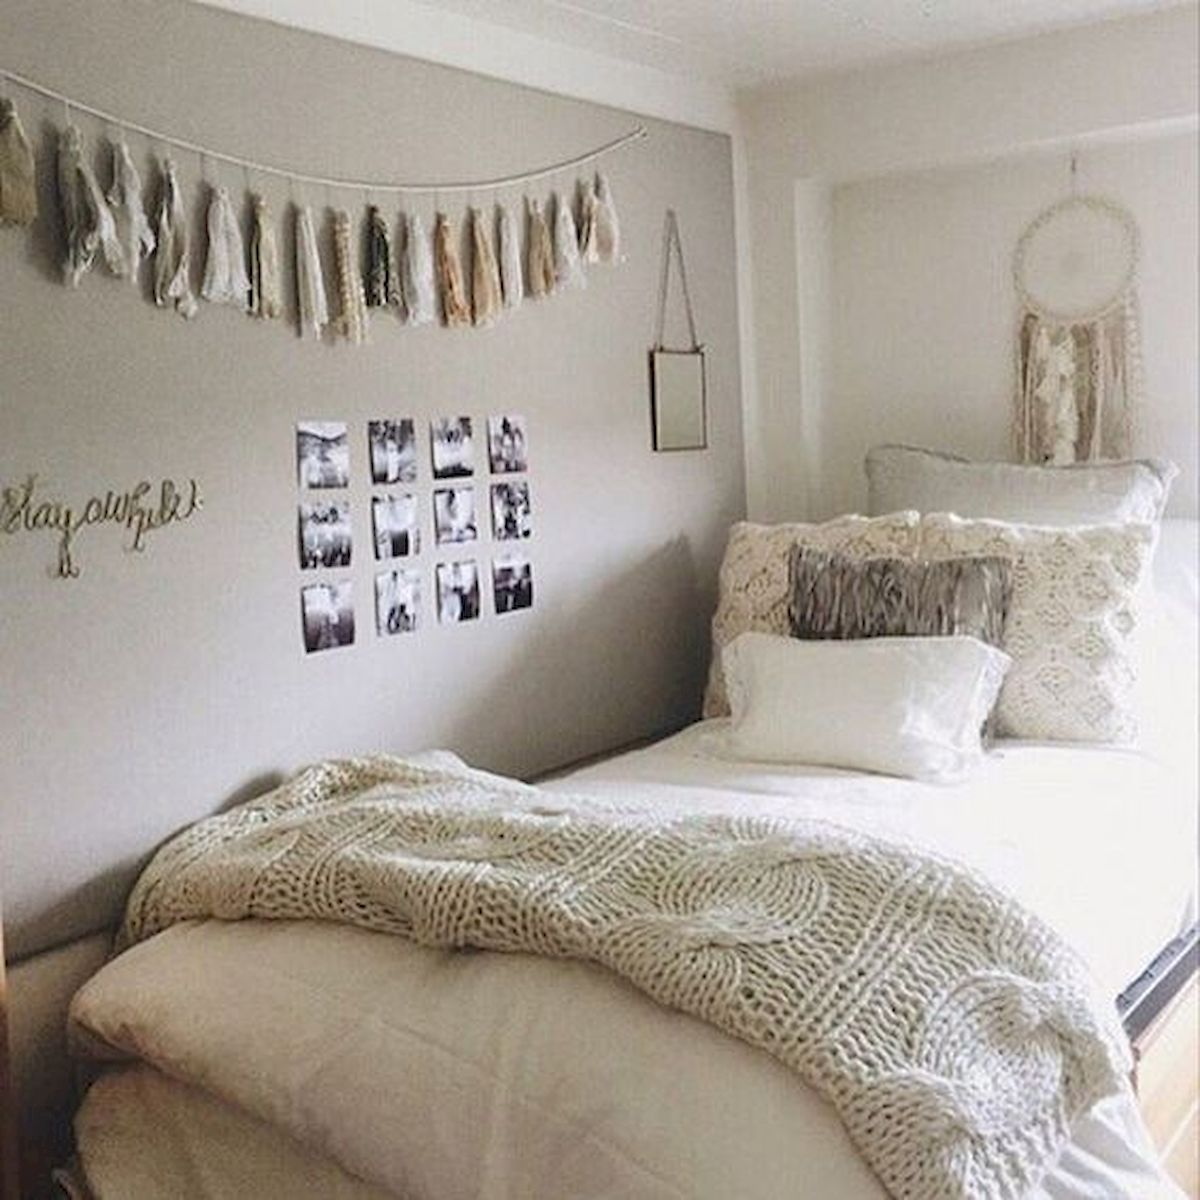 45 Beautifull DIY Bedroom Decor for Teens (21)